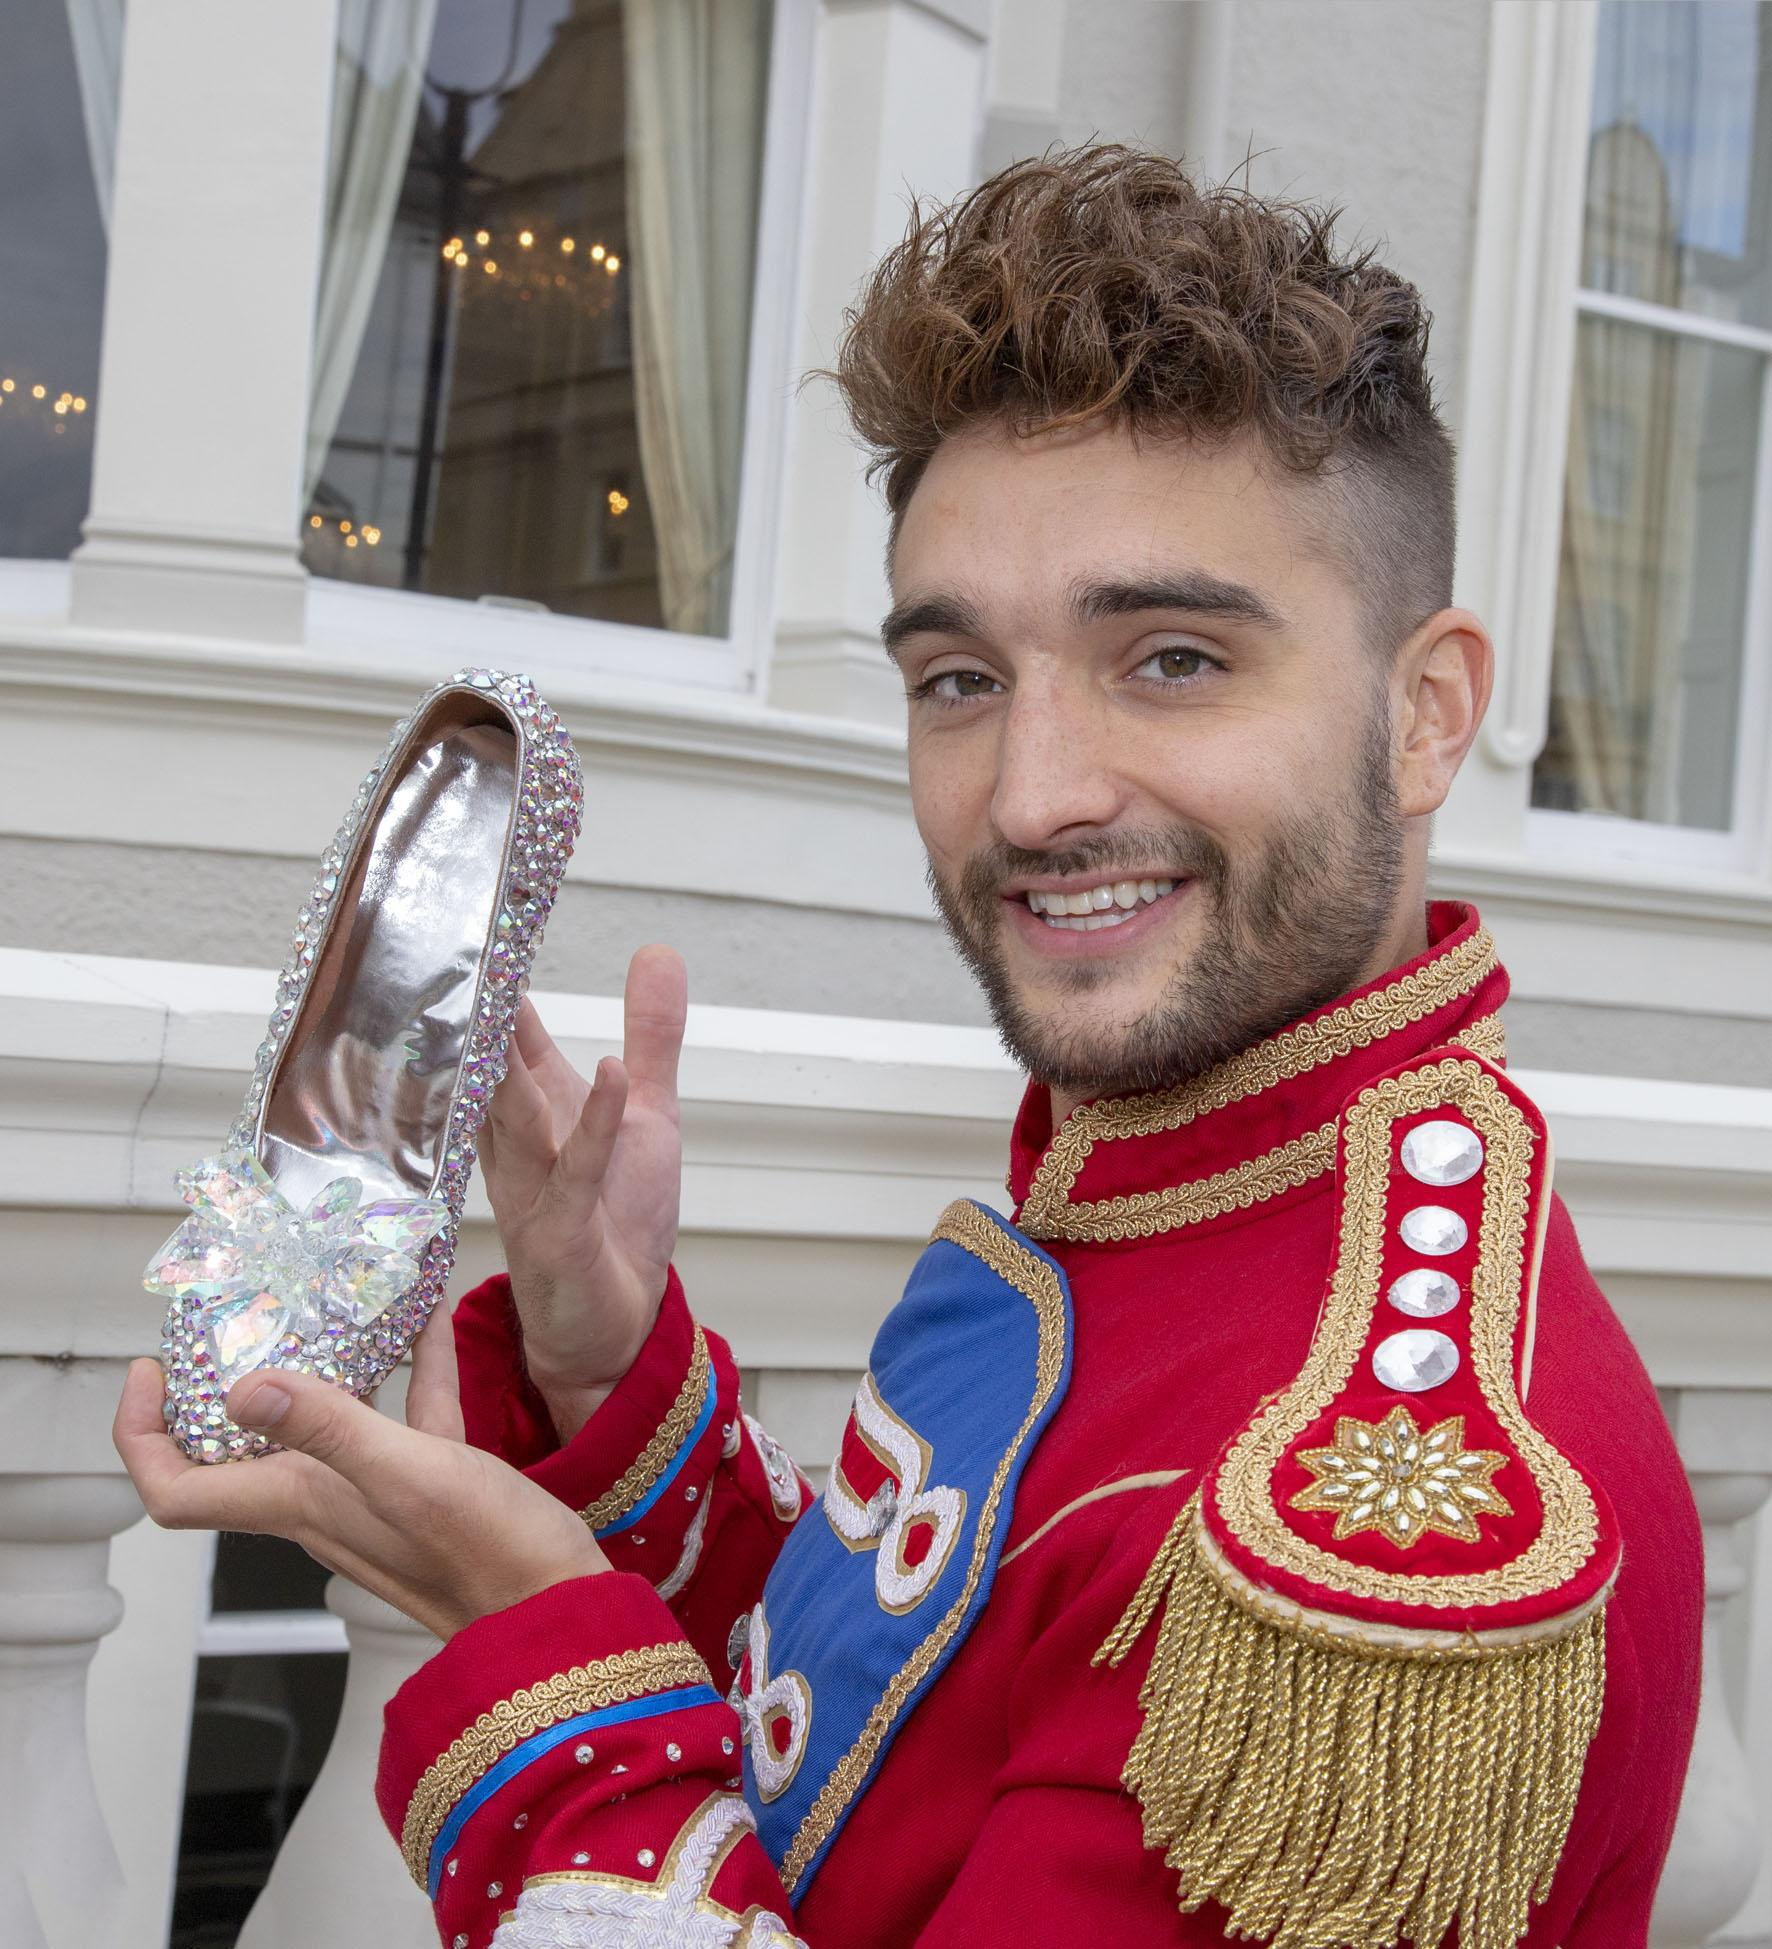 image of Tom Parker (Prince Charming) with glass slipper